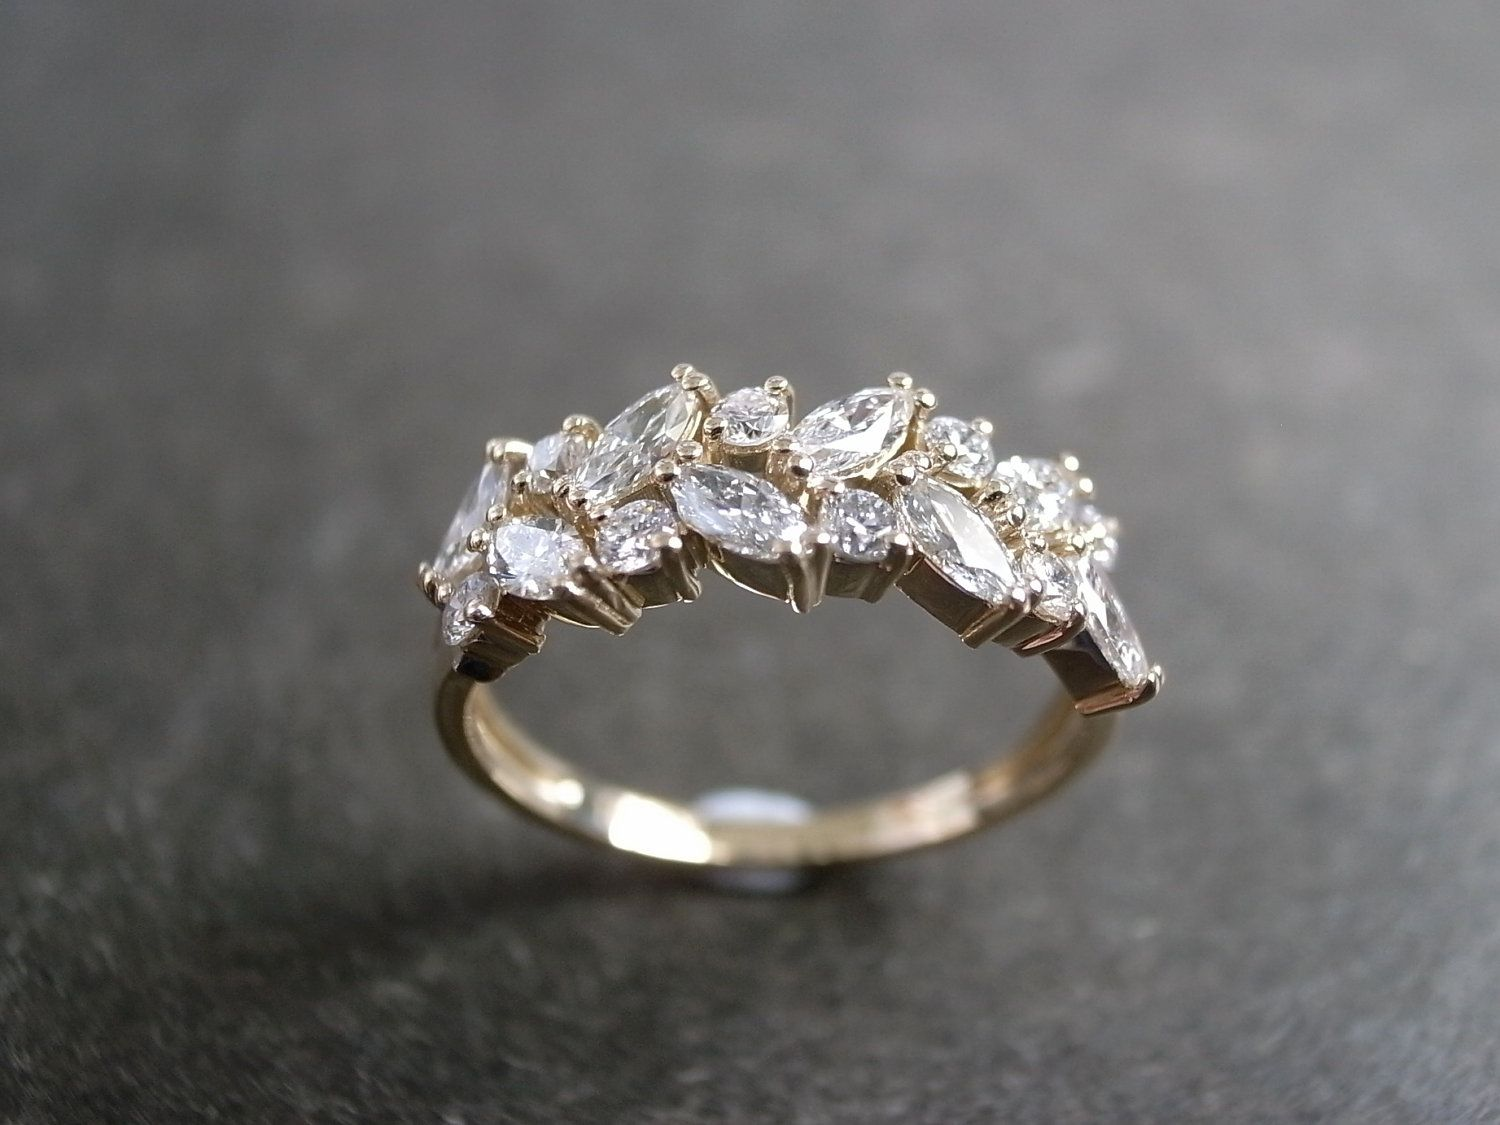 etsy wedding bands Final Marquise Diamond Wedding Ring in 14K Yellow Gold